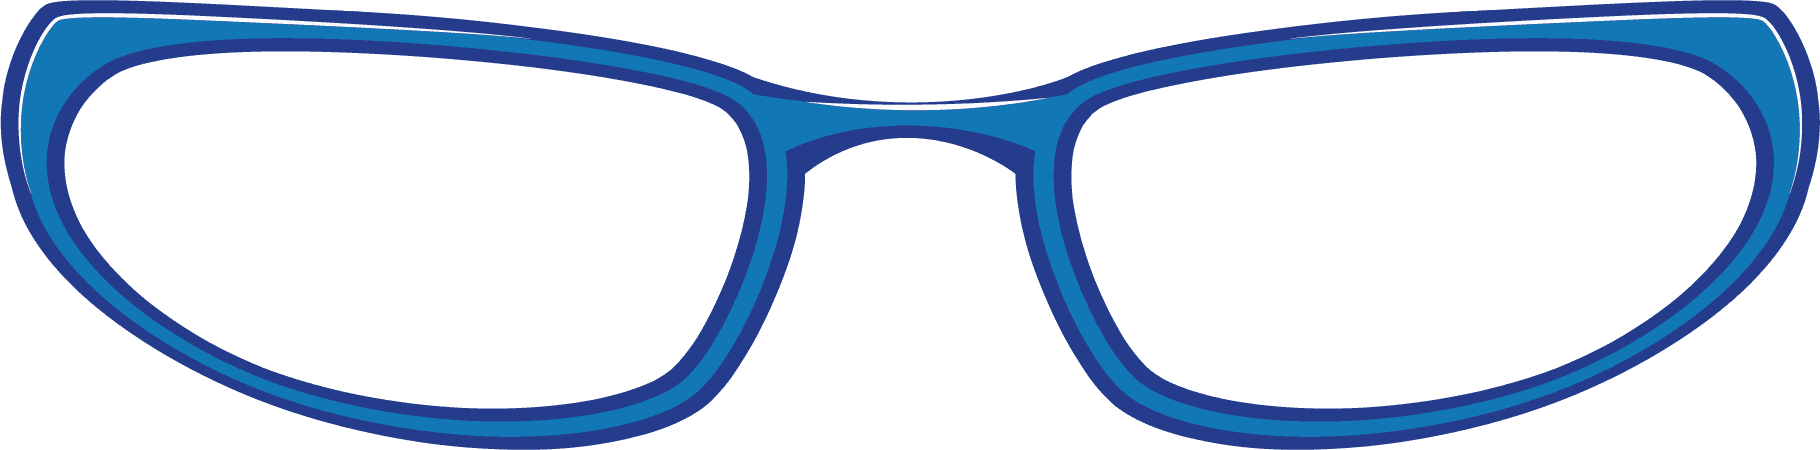 clip art royalty free download Round panda free images. Eye glasses clipart